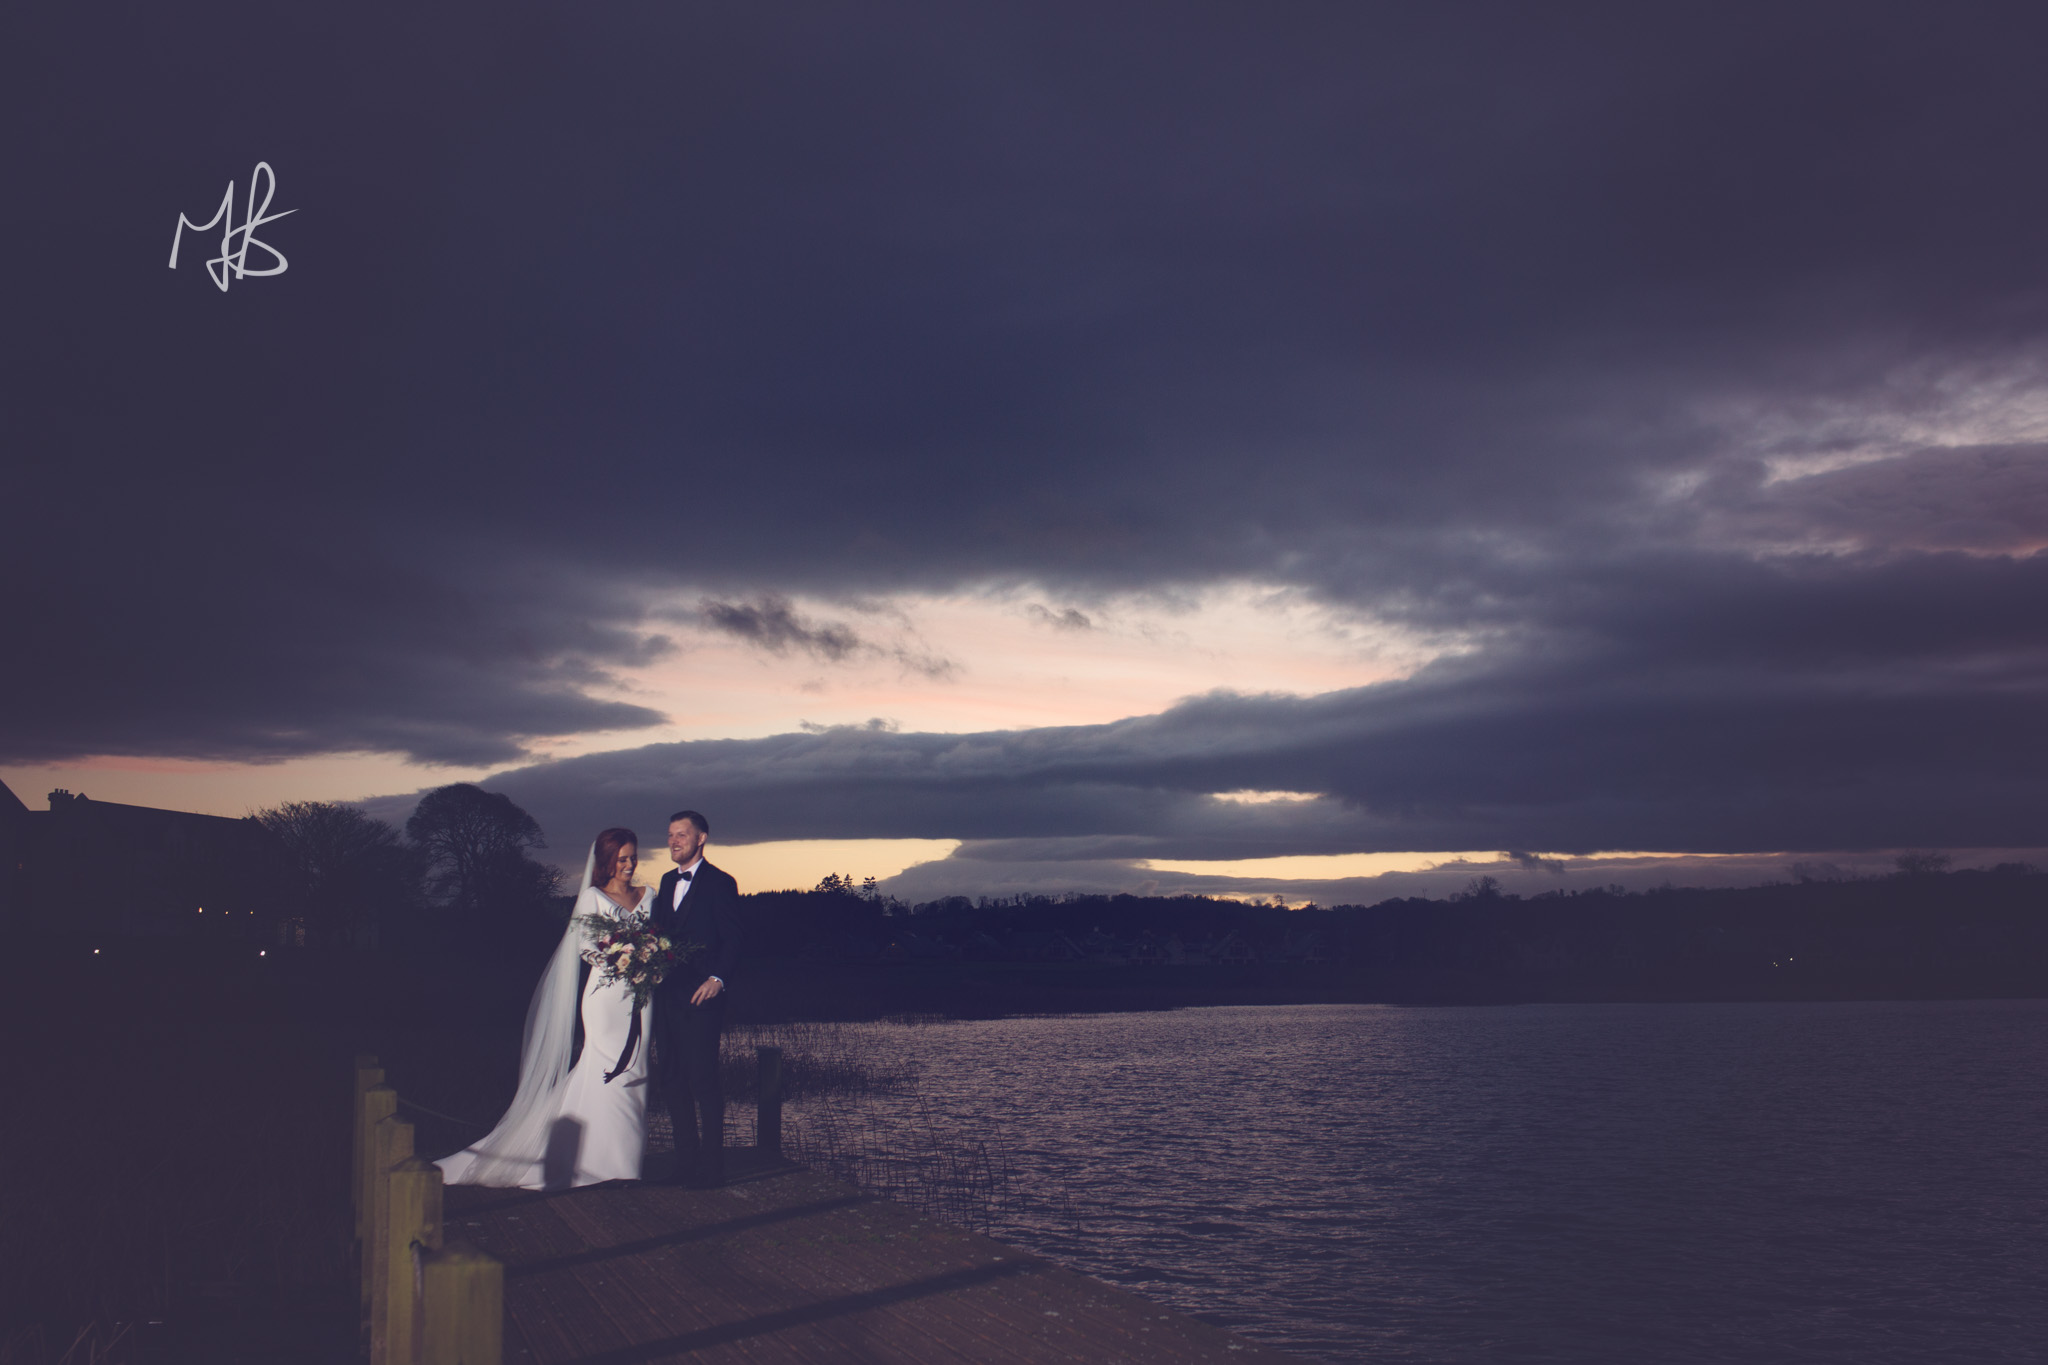 Mark_Barnes_Northern_Ireland_wedding_photographer_Lough_Erne_Resort_Eniskillen_Wedding_photography-Previews-216.jpg